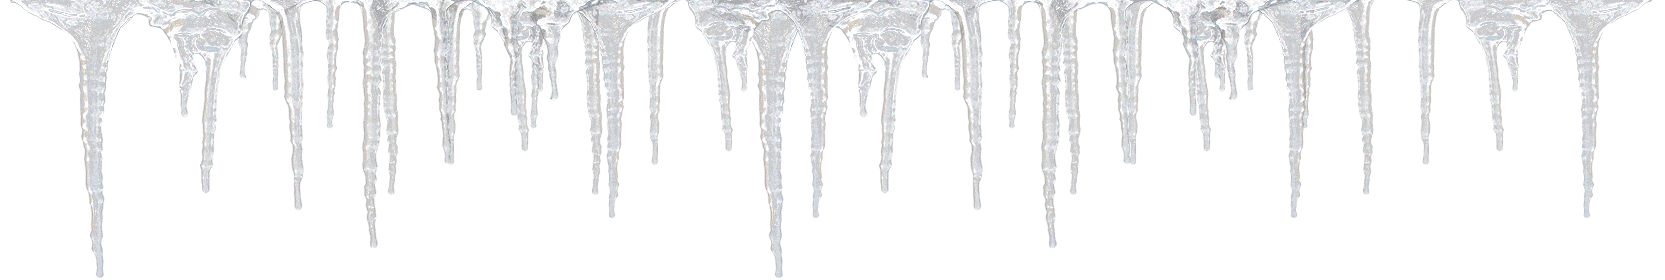 icicle clip black. Icicles transparent small clipart royalty free download